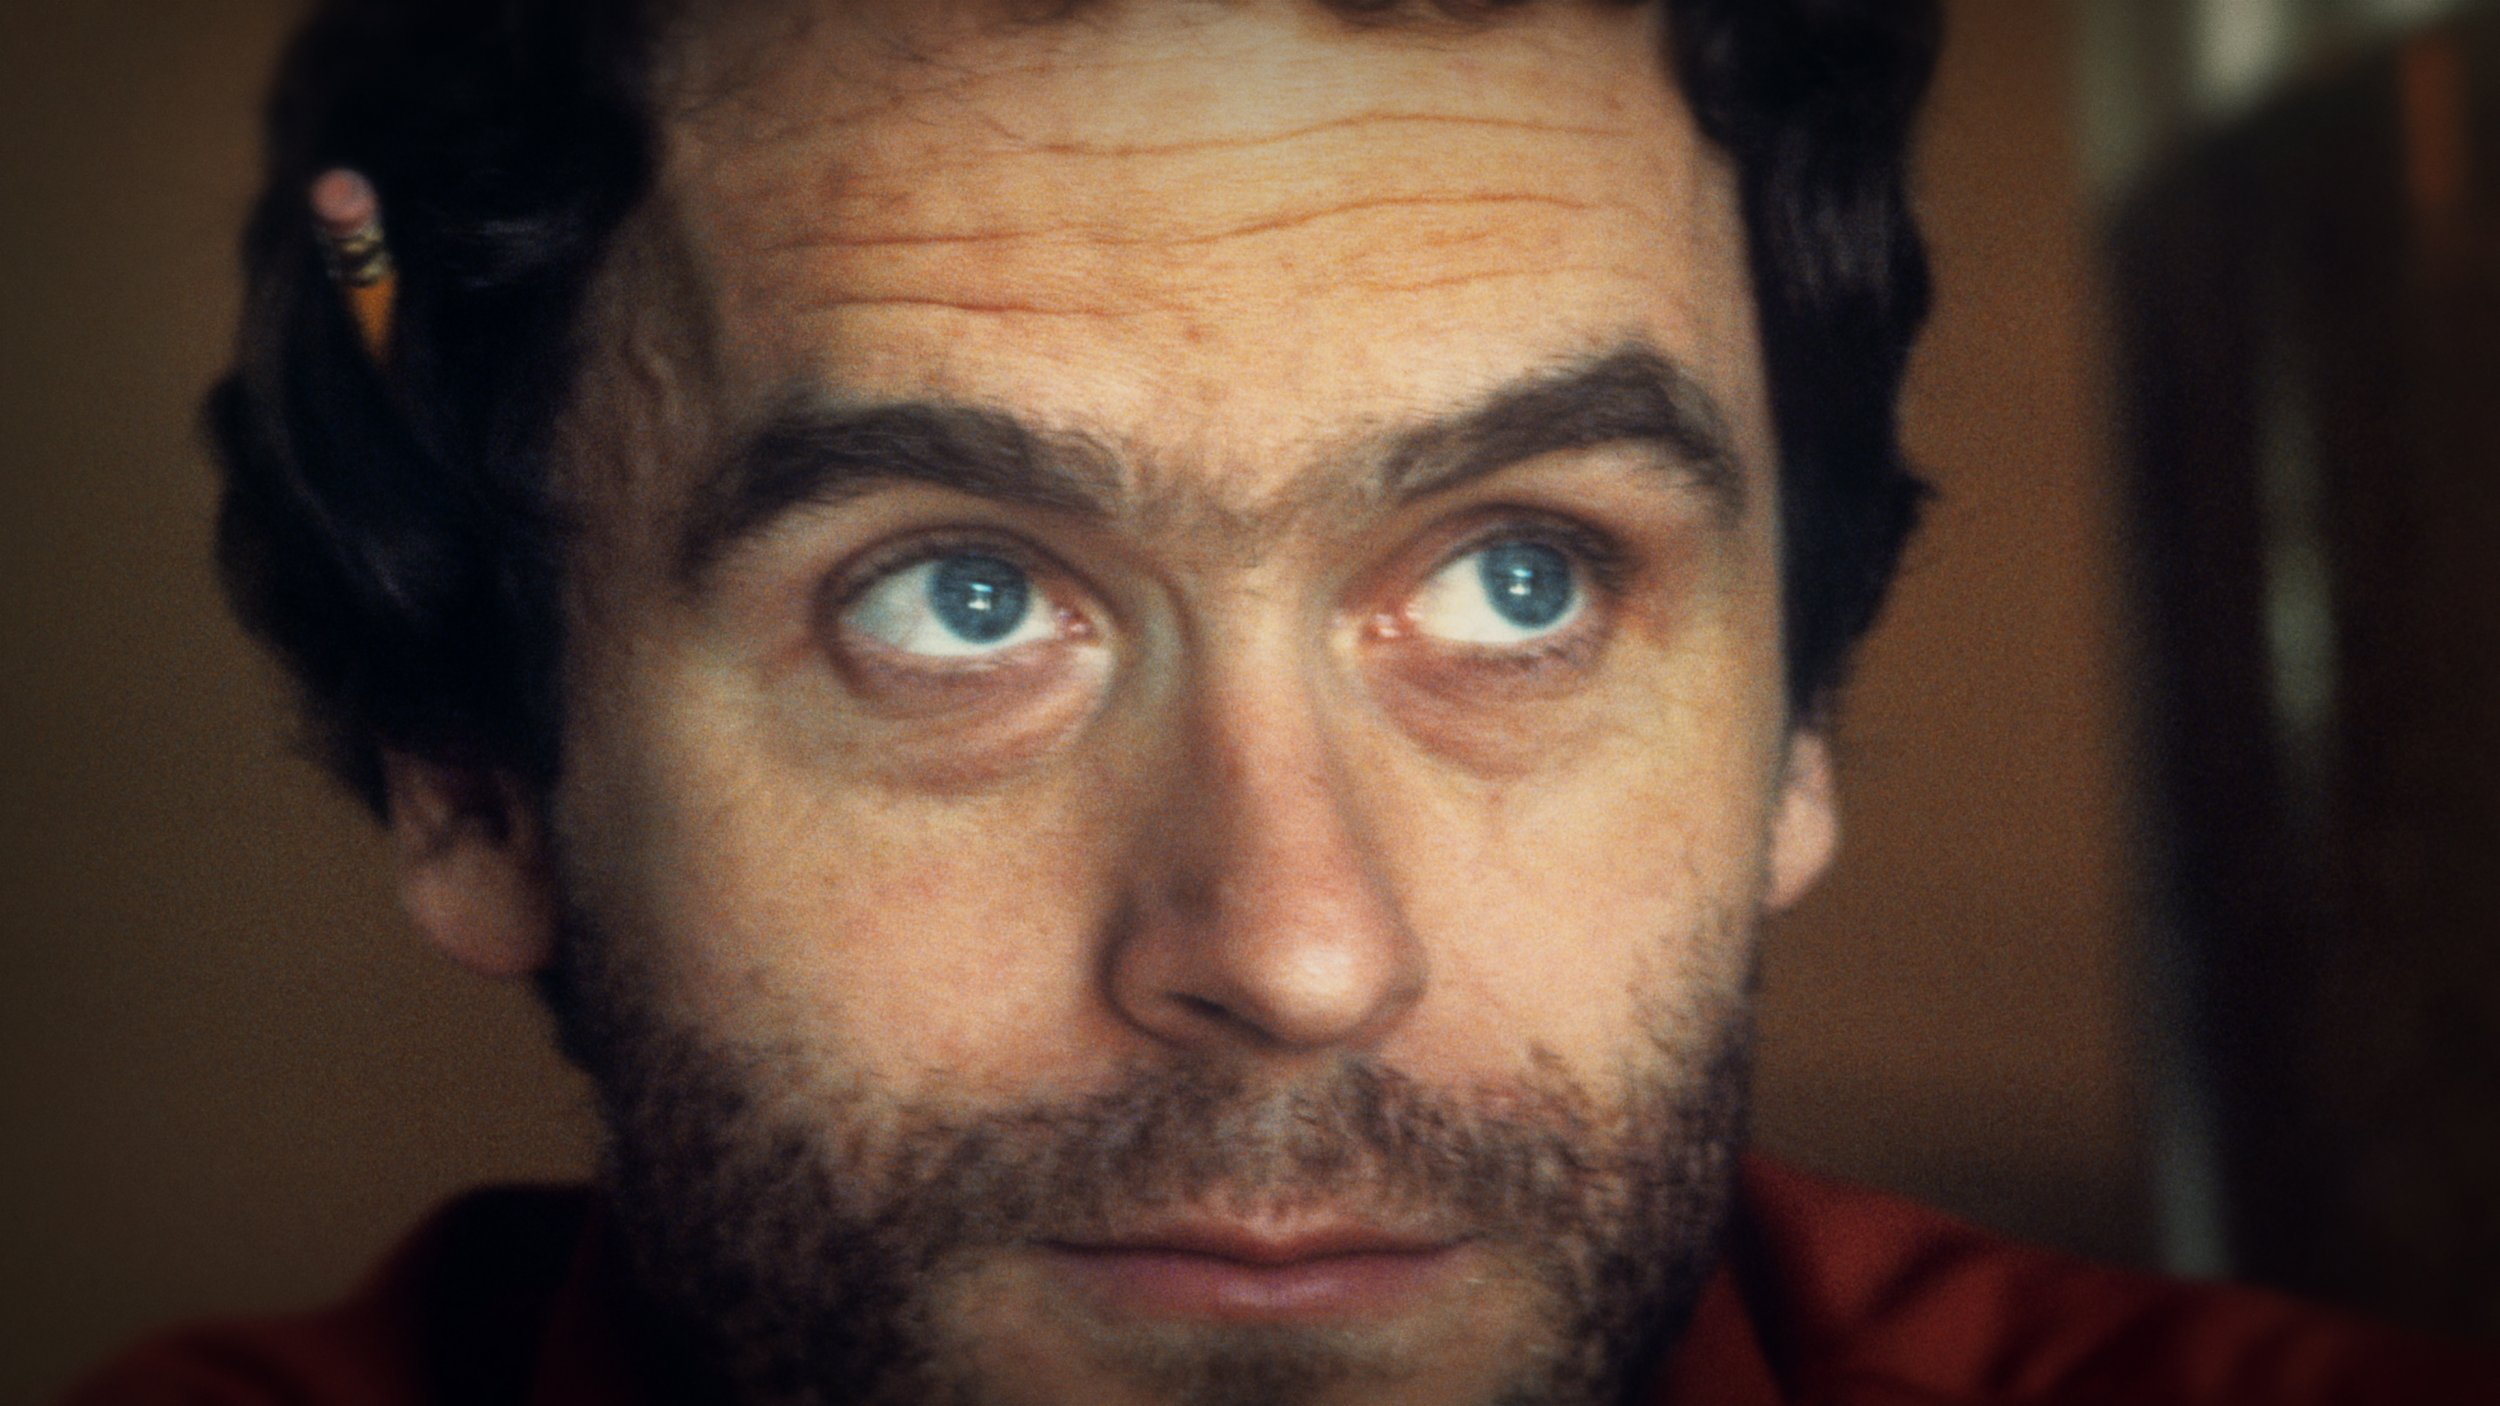 Conversations_with_a_Killer__The_Ted_Bundy_Tapes_S01E01_51m50s74587f